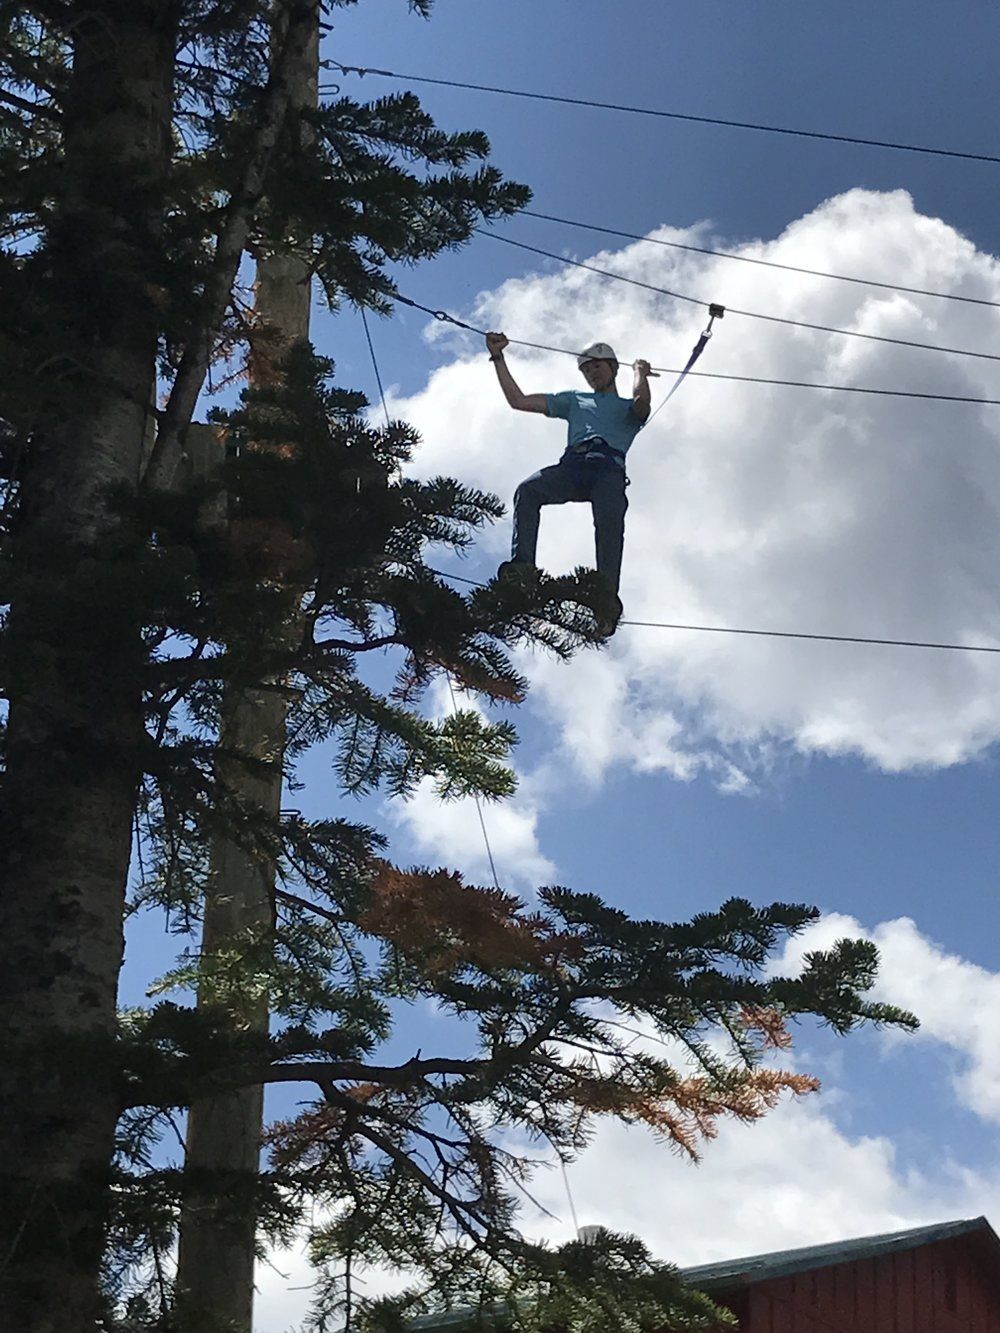 An LCS student participates in a ropes course on a school sponsored trip to the mountains.